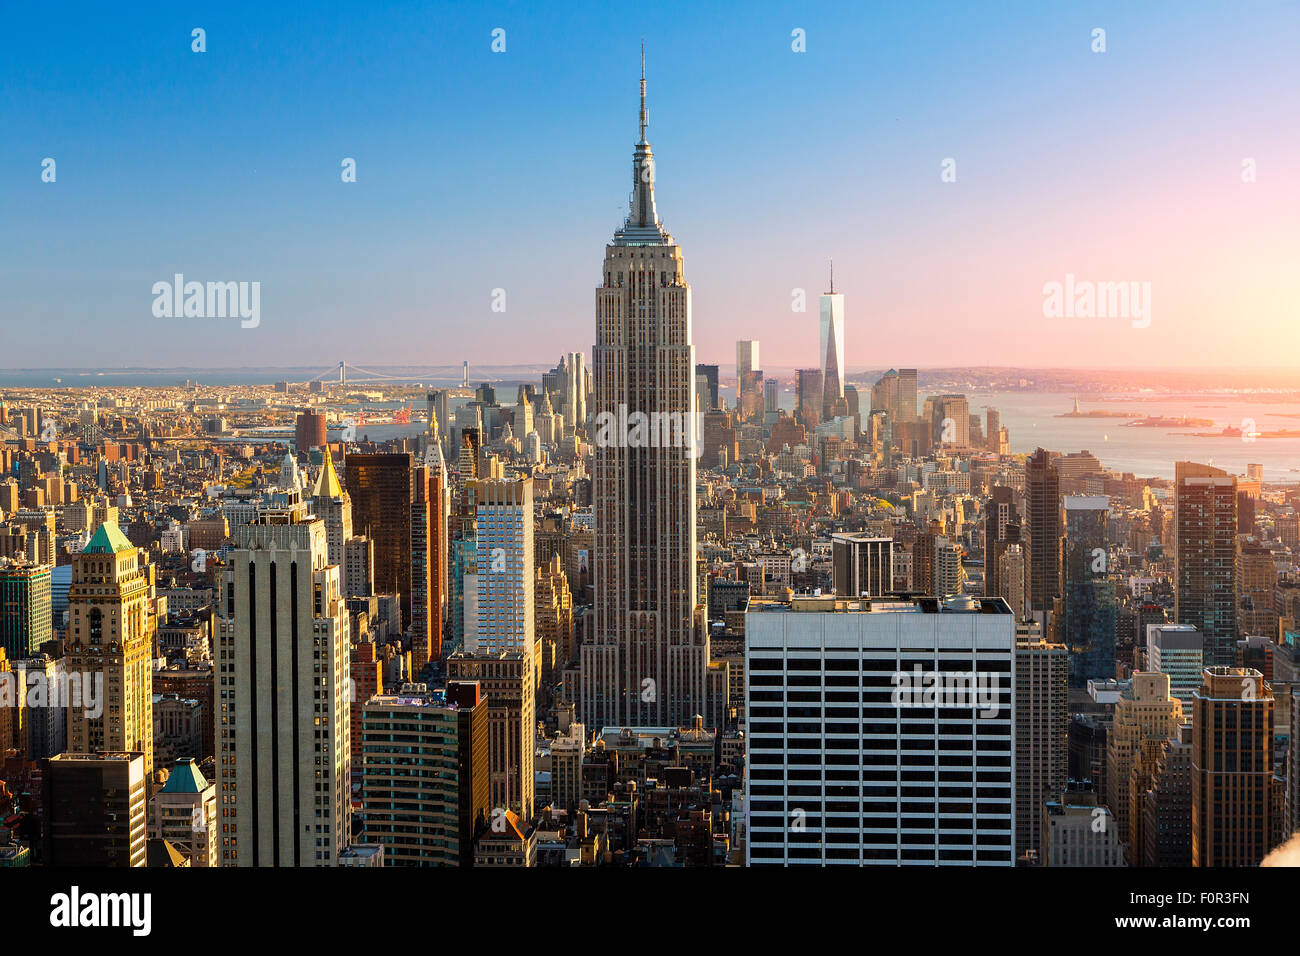 New York City, Empire State Building bei Sonnenuntergang Stockbild